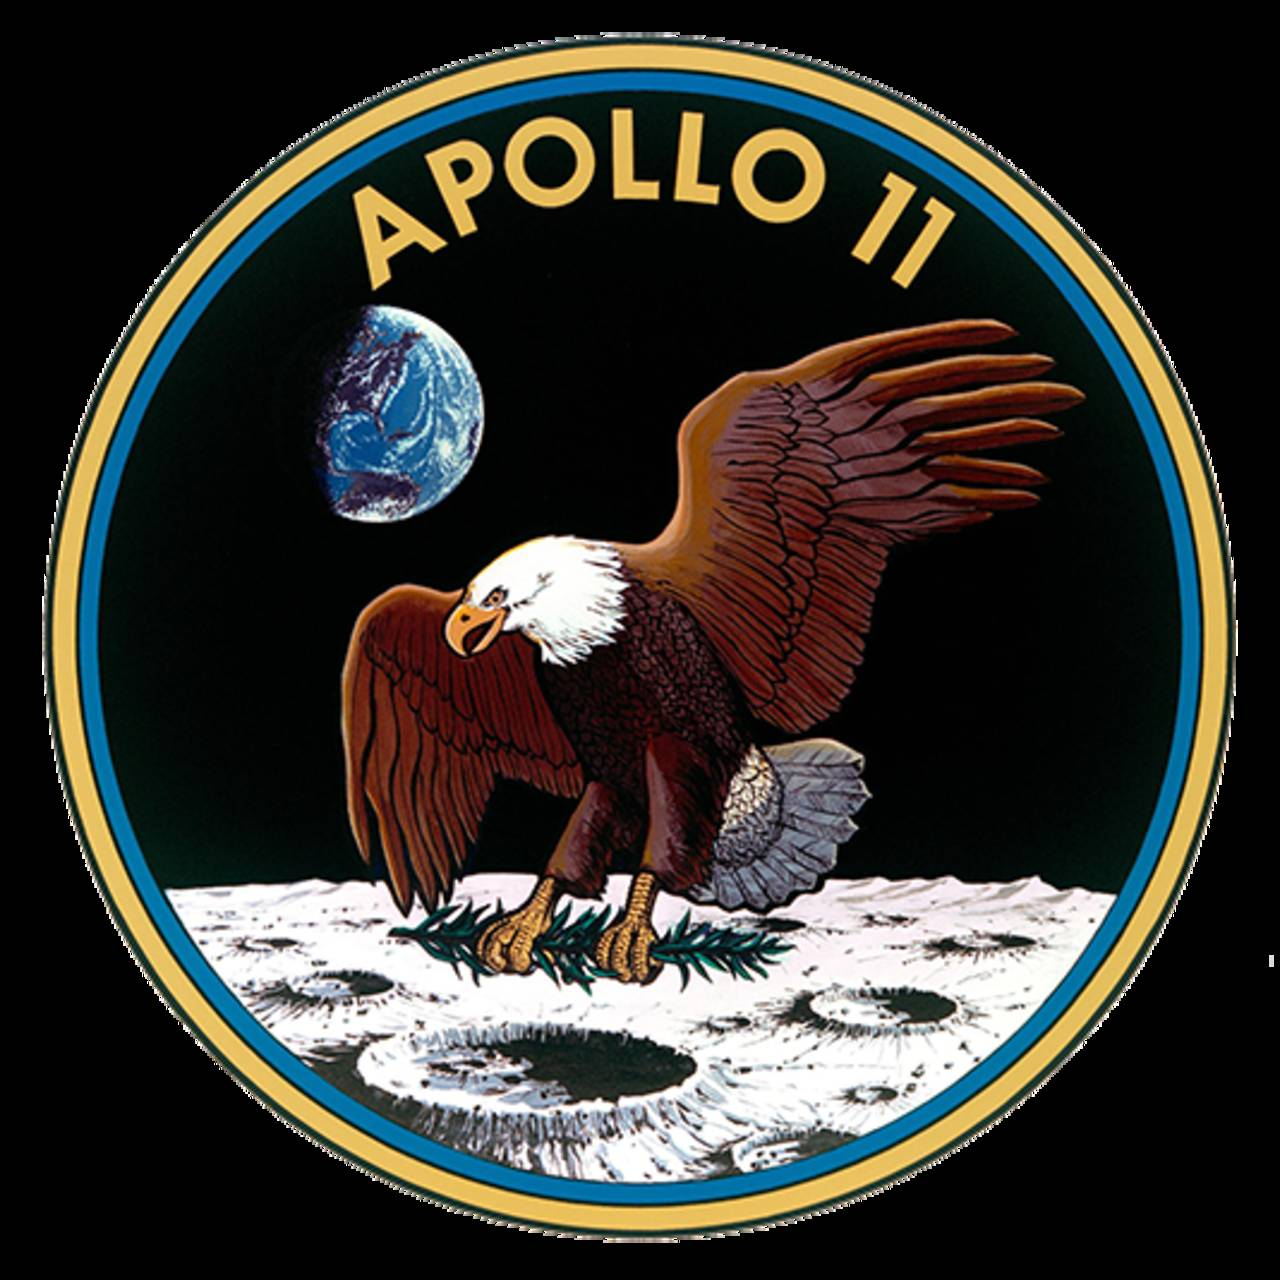 apollo11-patch_1560300883446.png